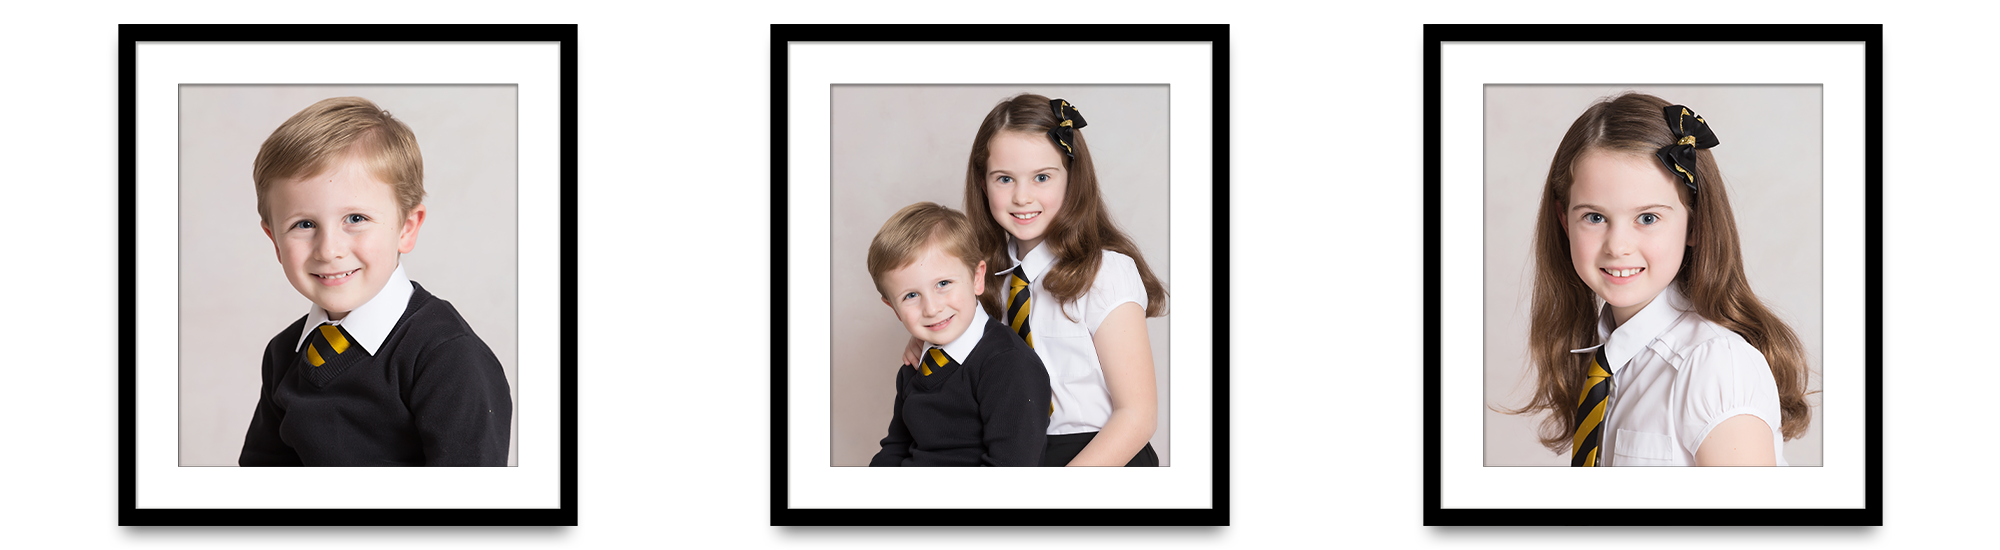 Rhu Primary School framed school photos brother and sister siblings Life in Focus Portraits school photography Rhu Helensburgh